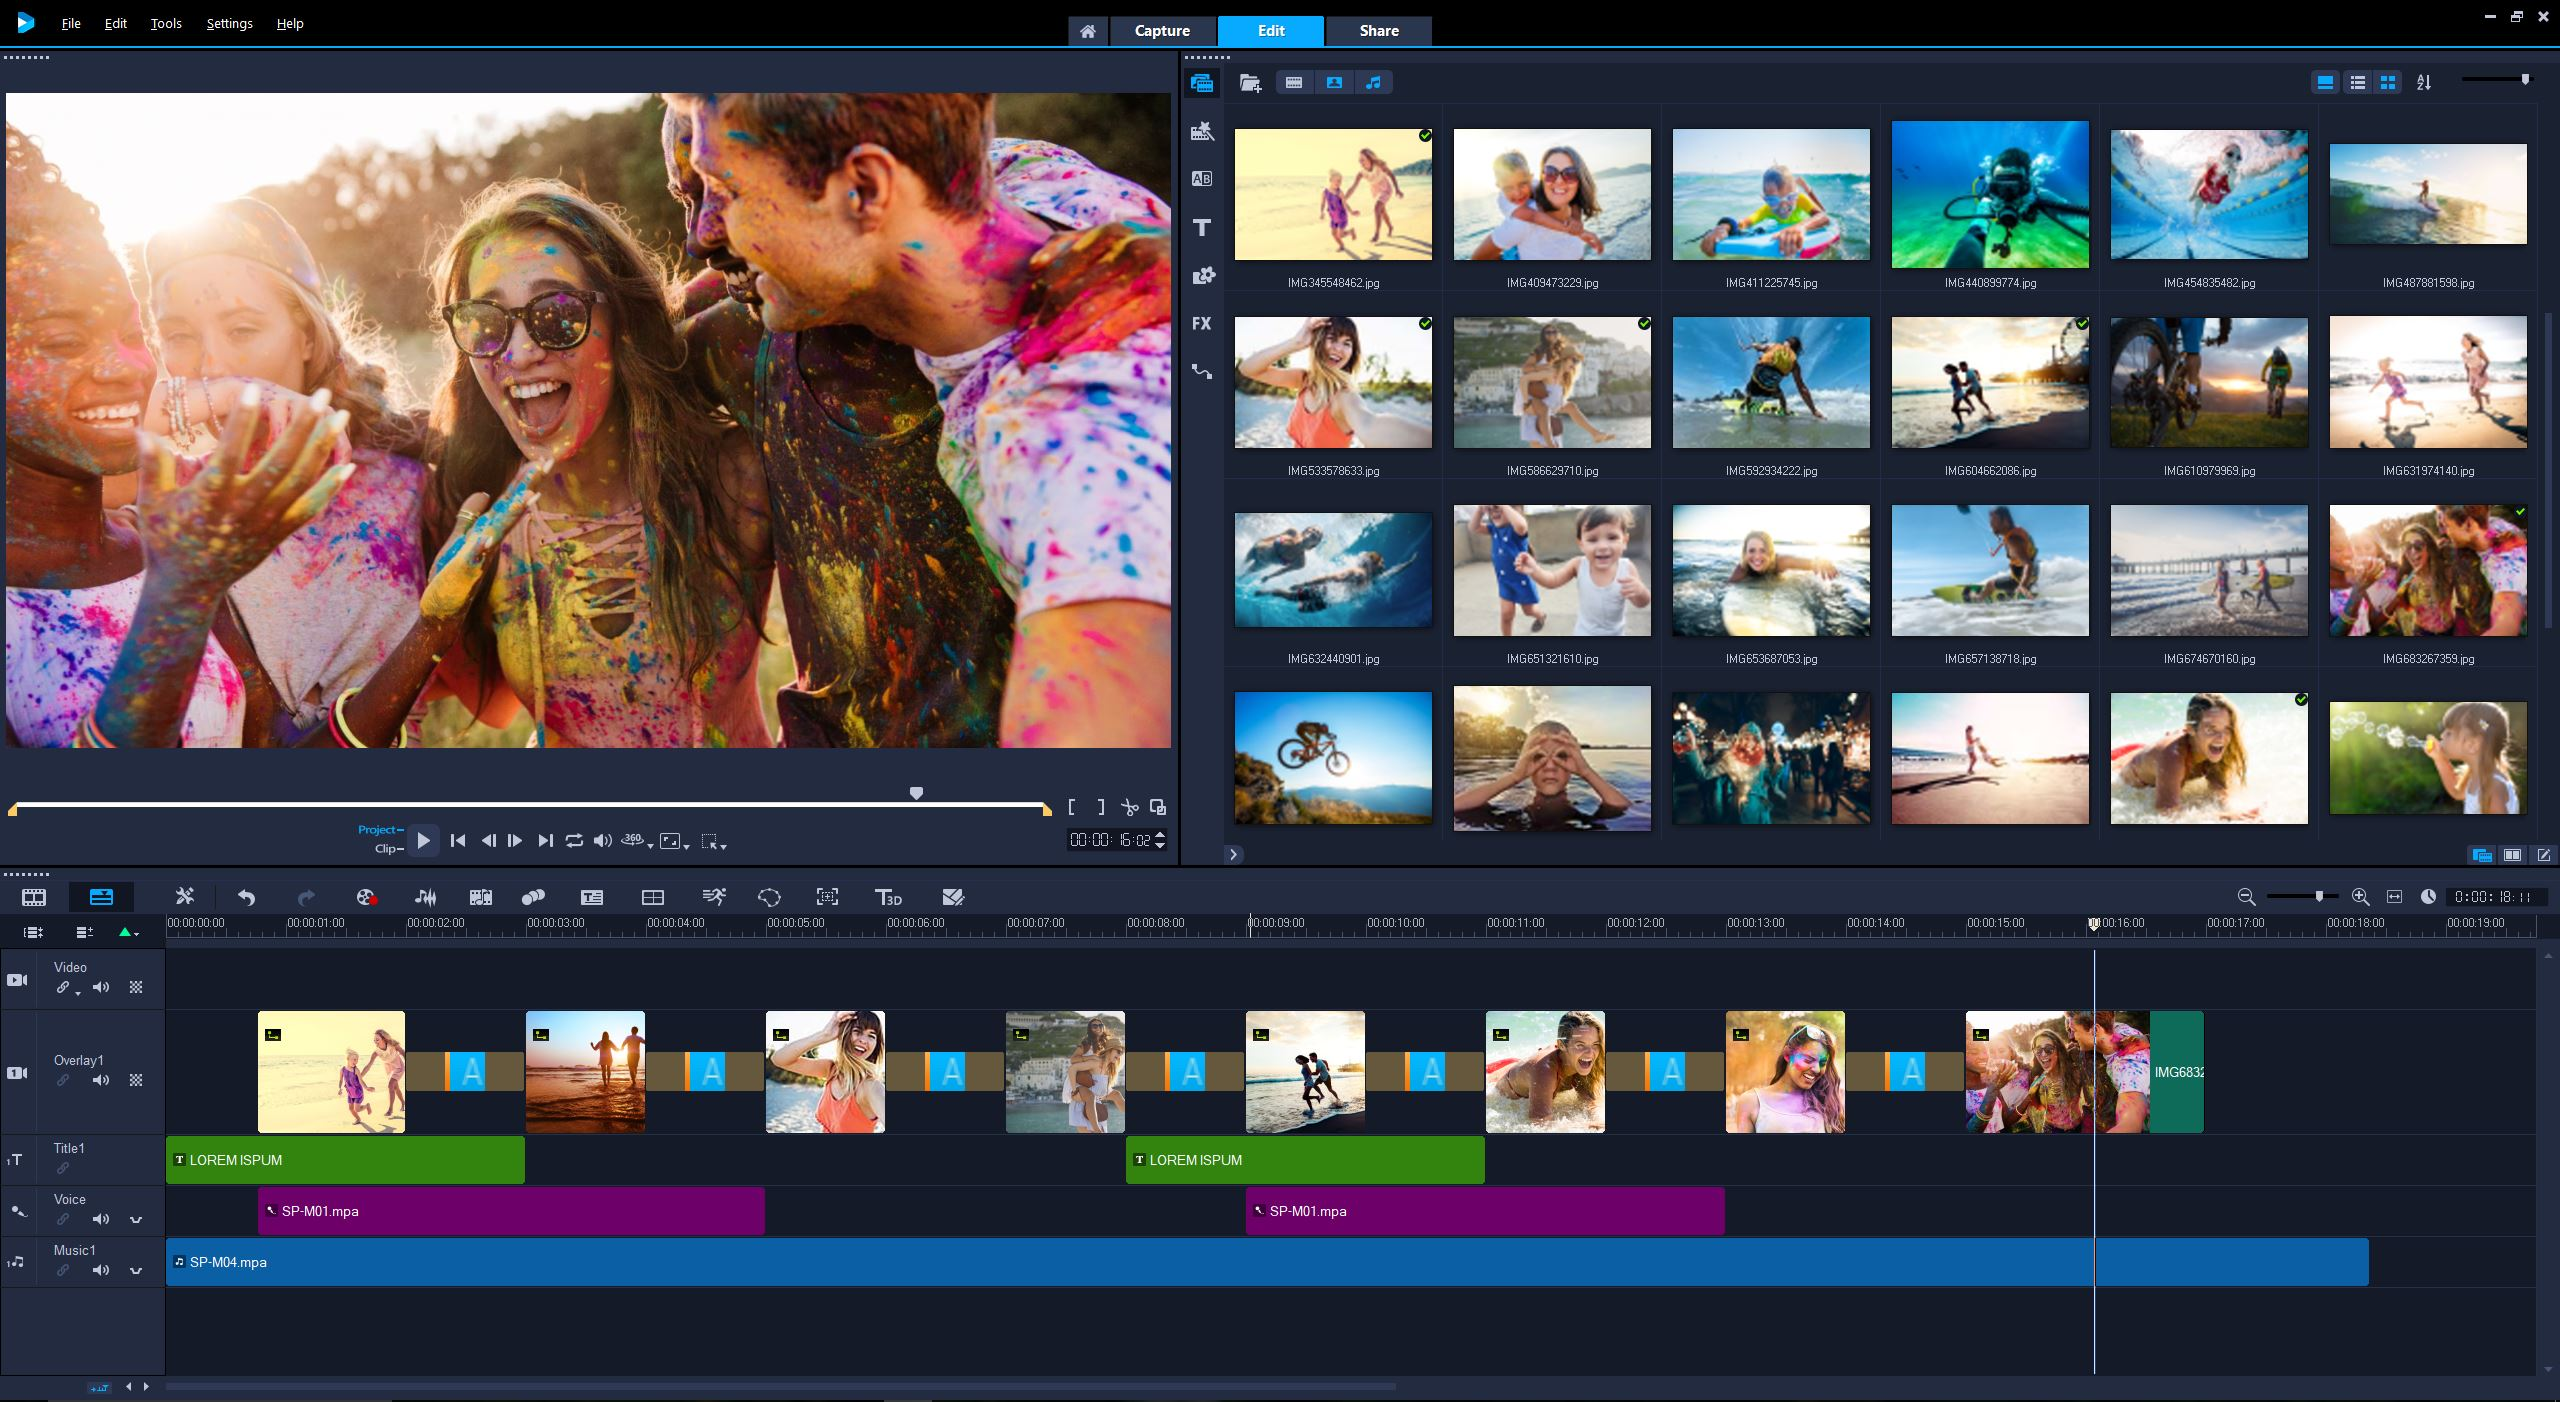 VideoStudio Ultimate 2018 User Interface